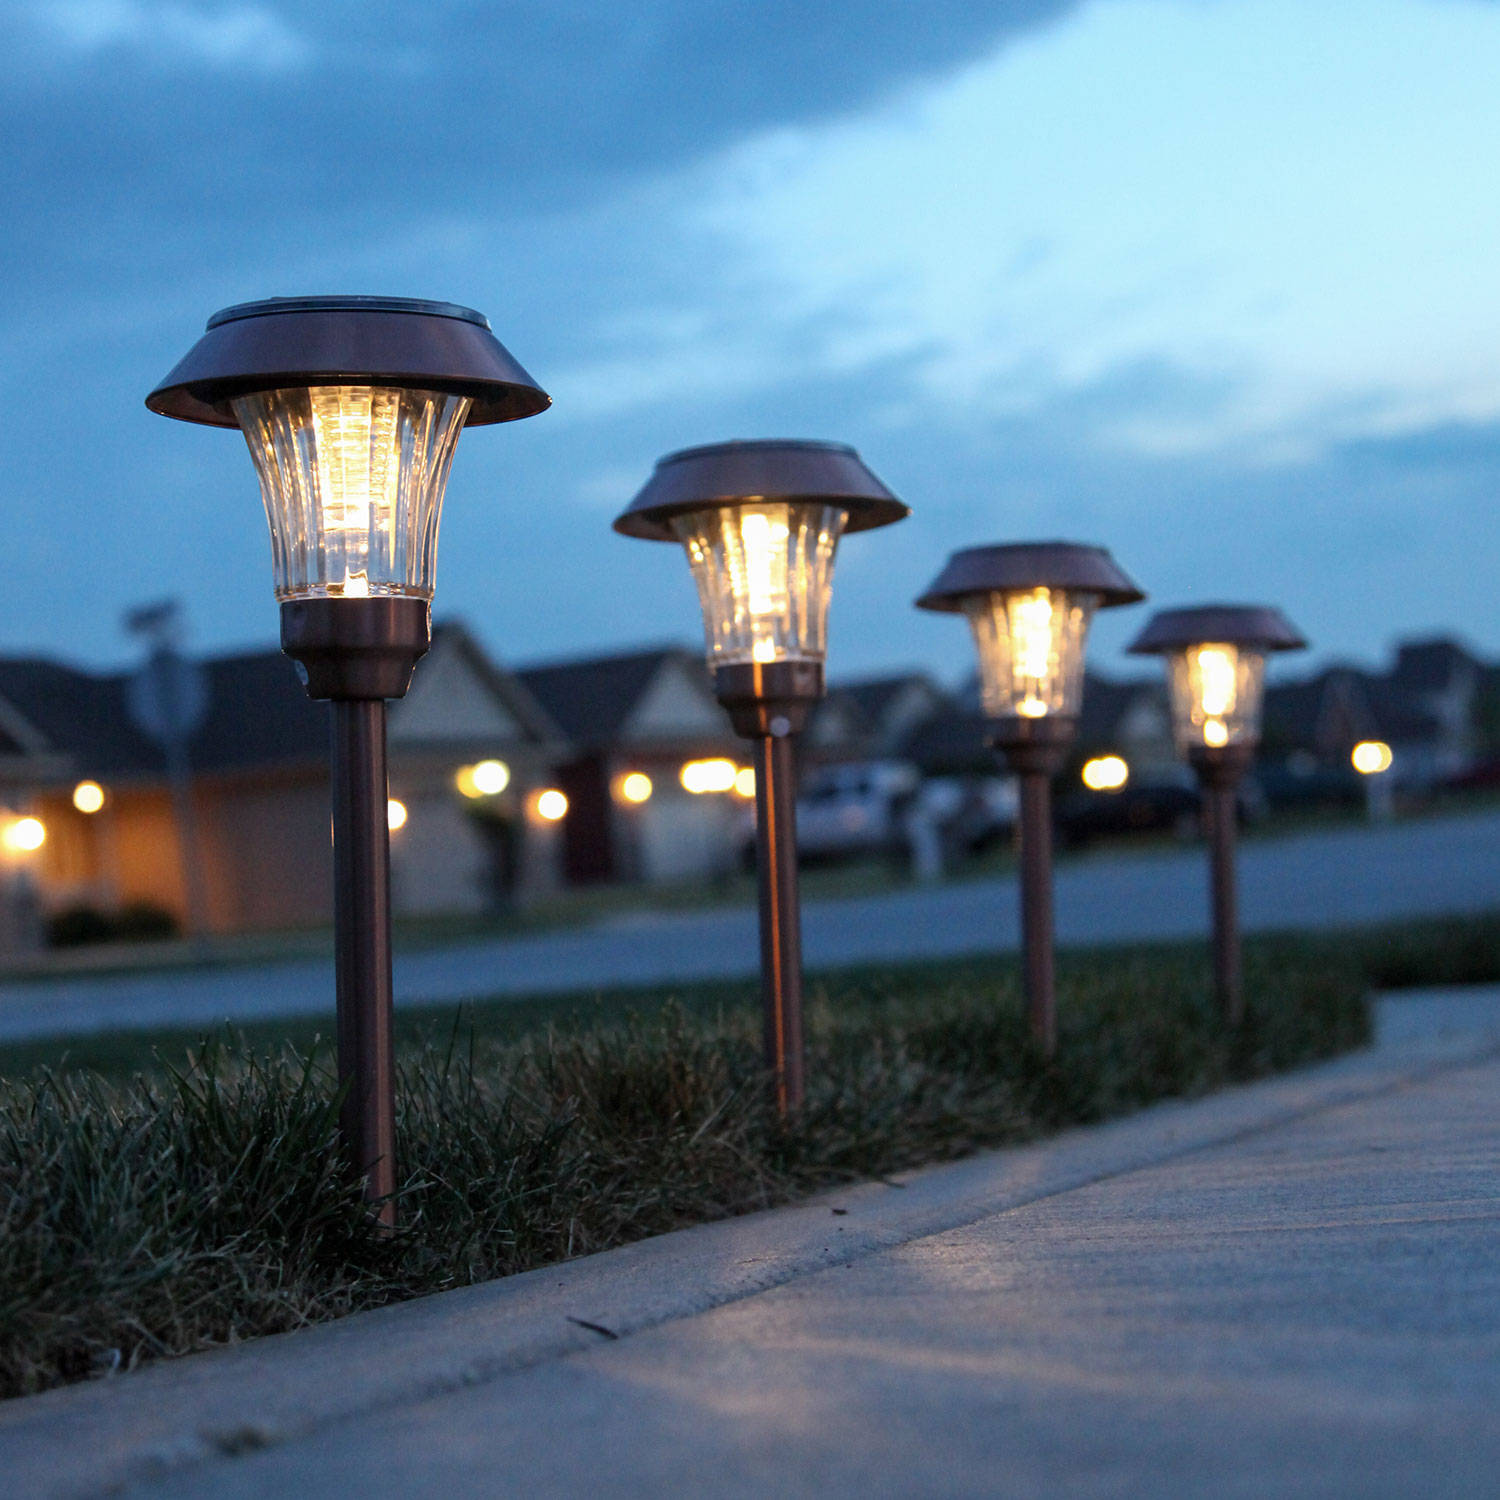 Solar Landscape Lights Outdoor: Warm White Copper